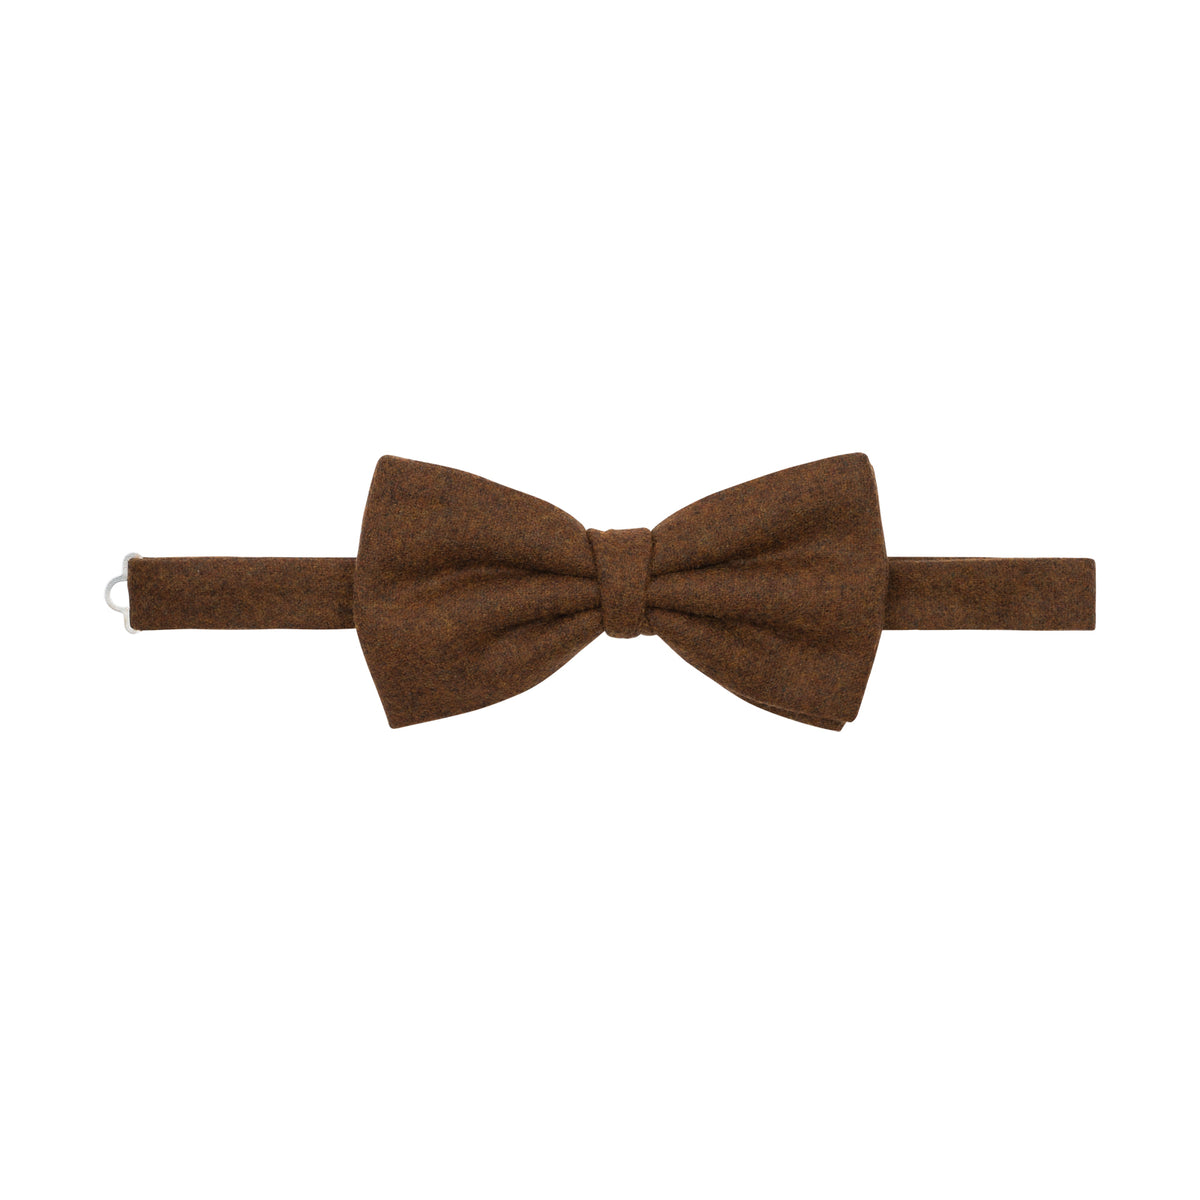 Felted Wool Bow Tie